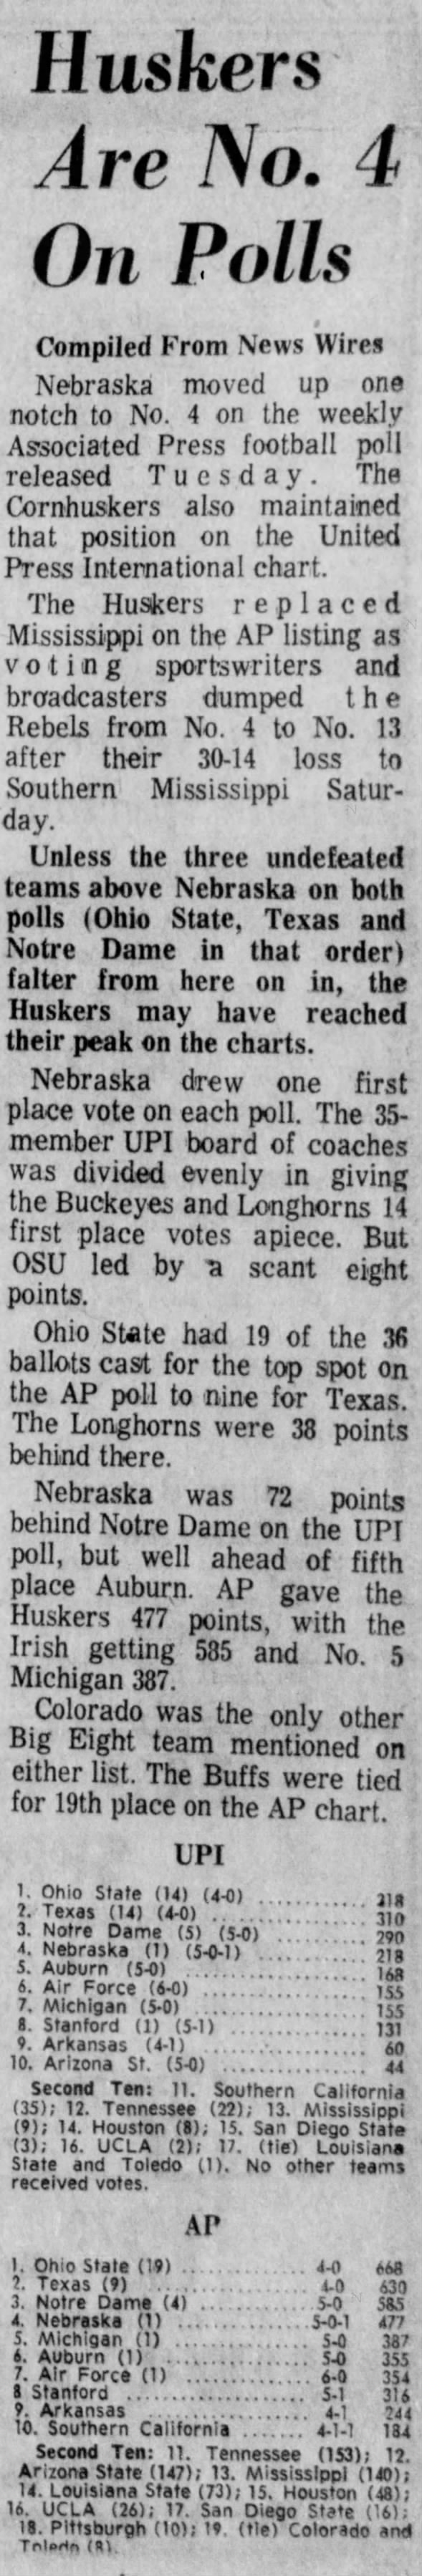 1970.10.20 College football polls, post-Kansas